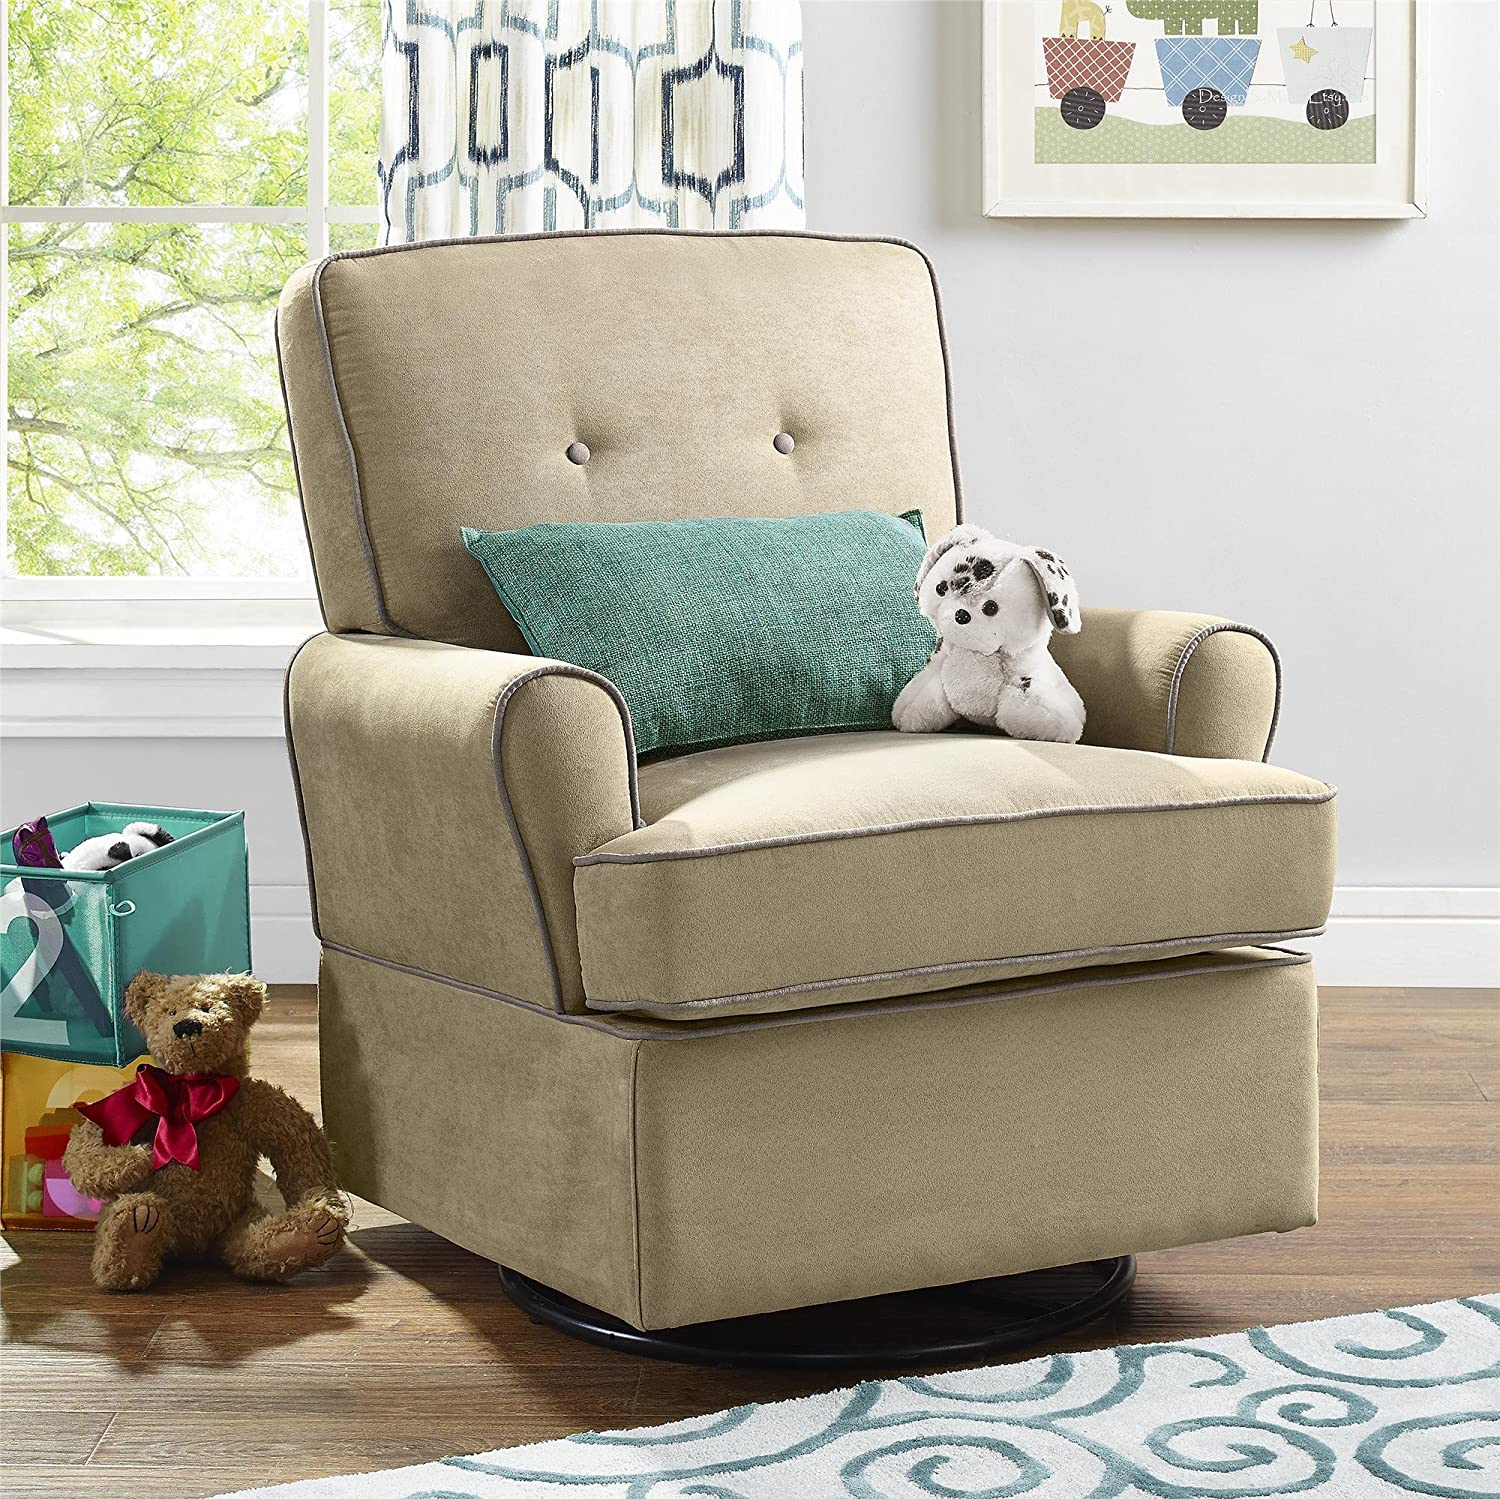 Amazon.com: Baby Relax The Tinsley Nursery Swivel Glider Chair, Beige: Baby